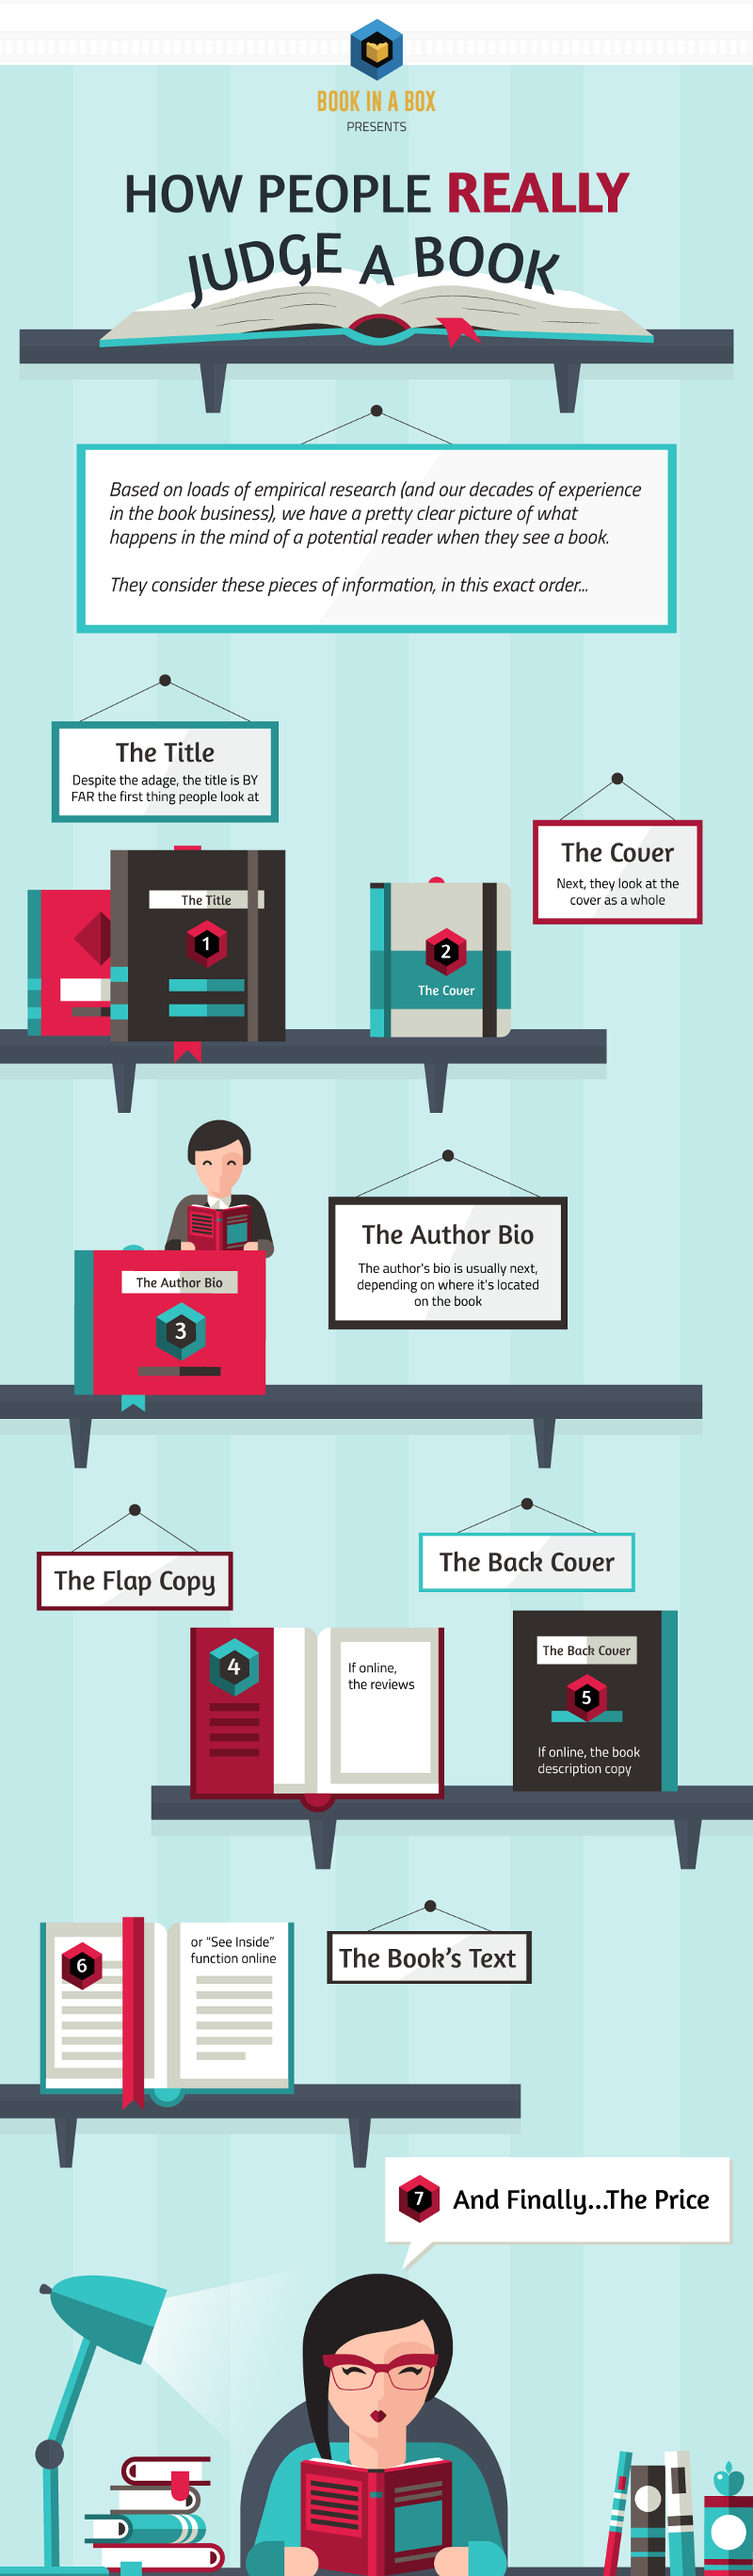 book buy decision, book in a box, infographic